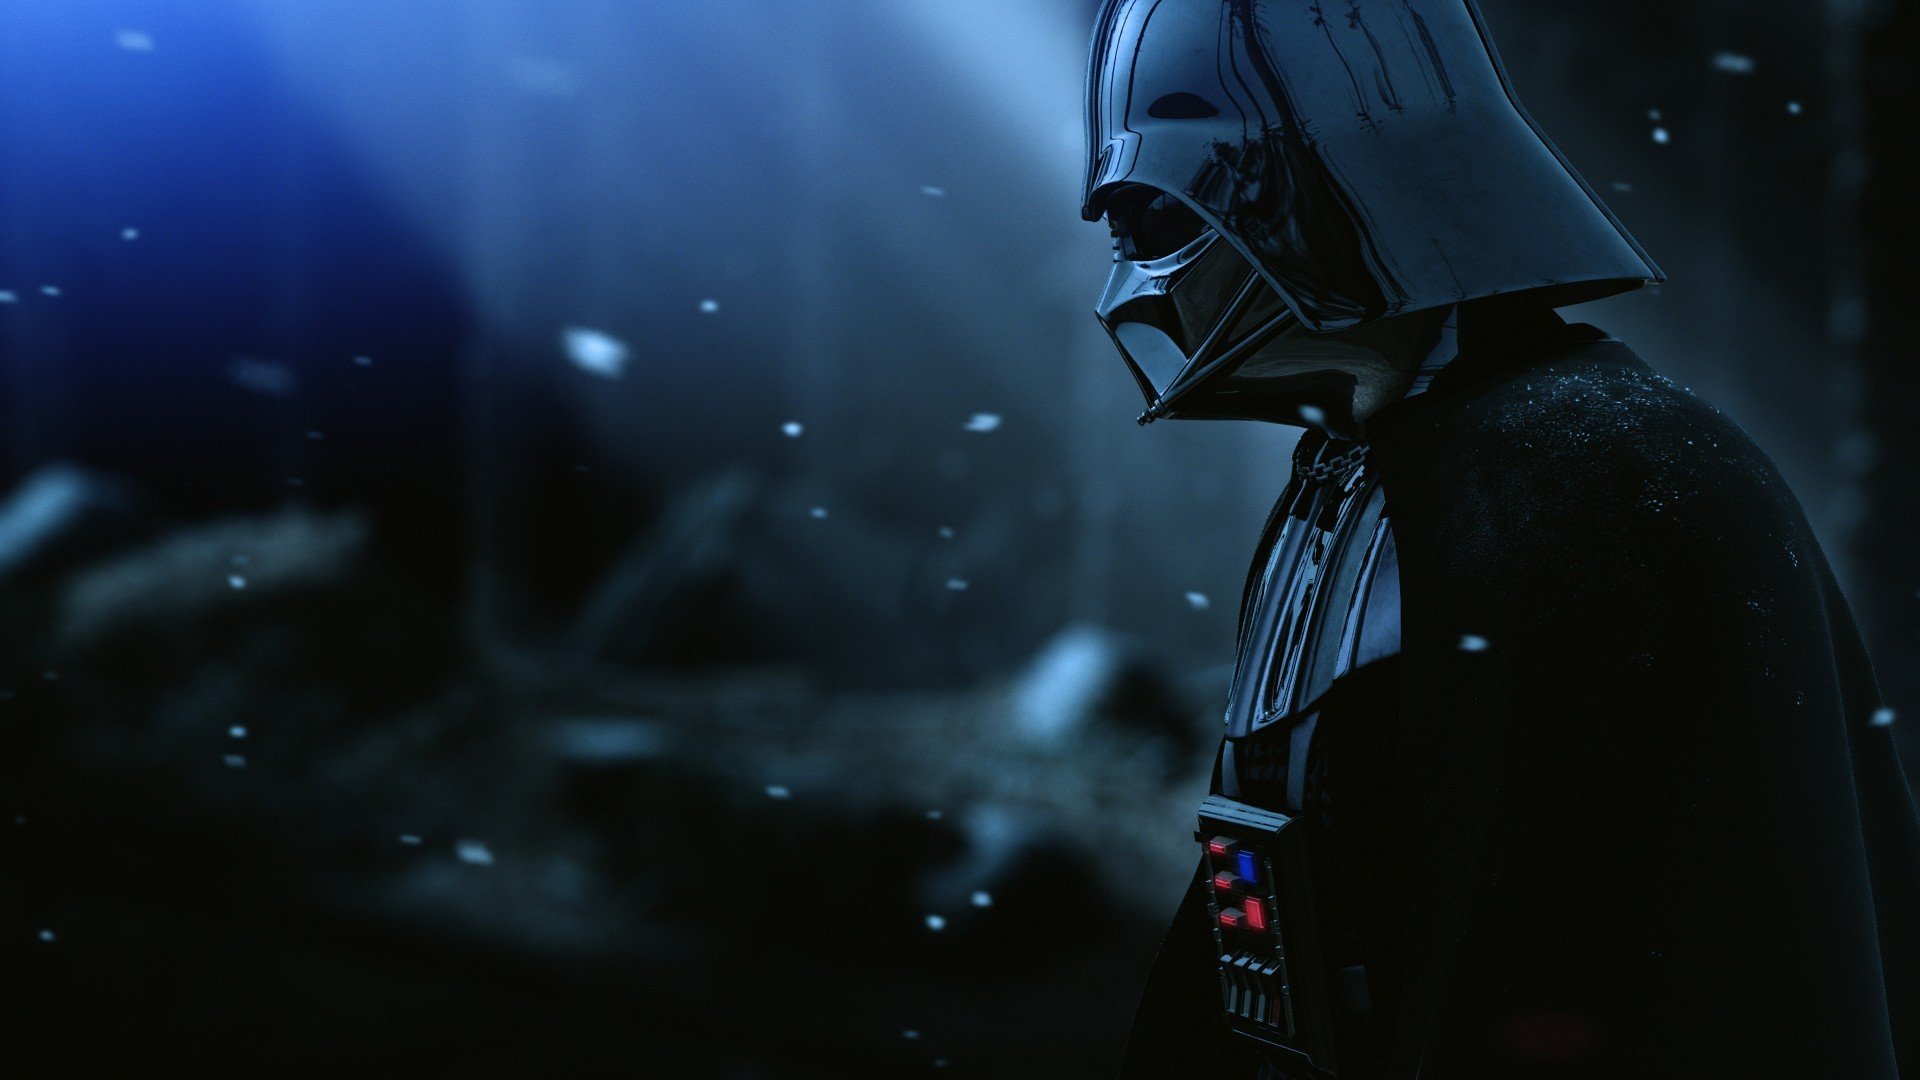 this star wars wallpaper pack contains 31 unique wallpapers in full hd 1920x1080